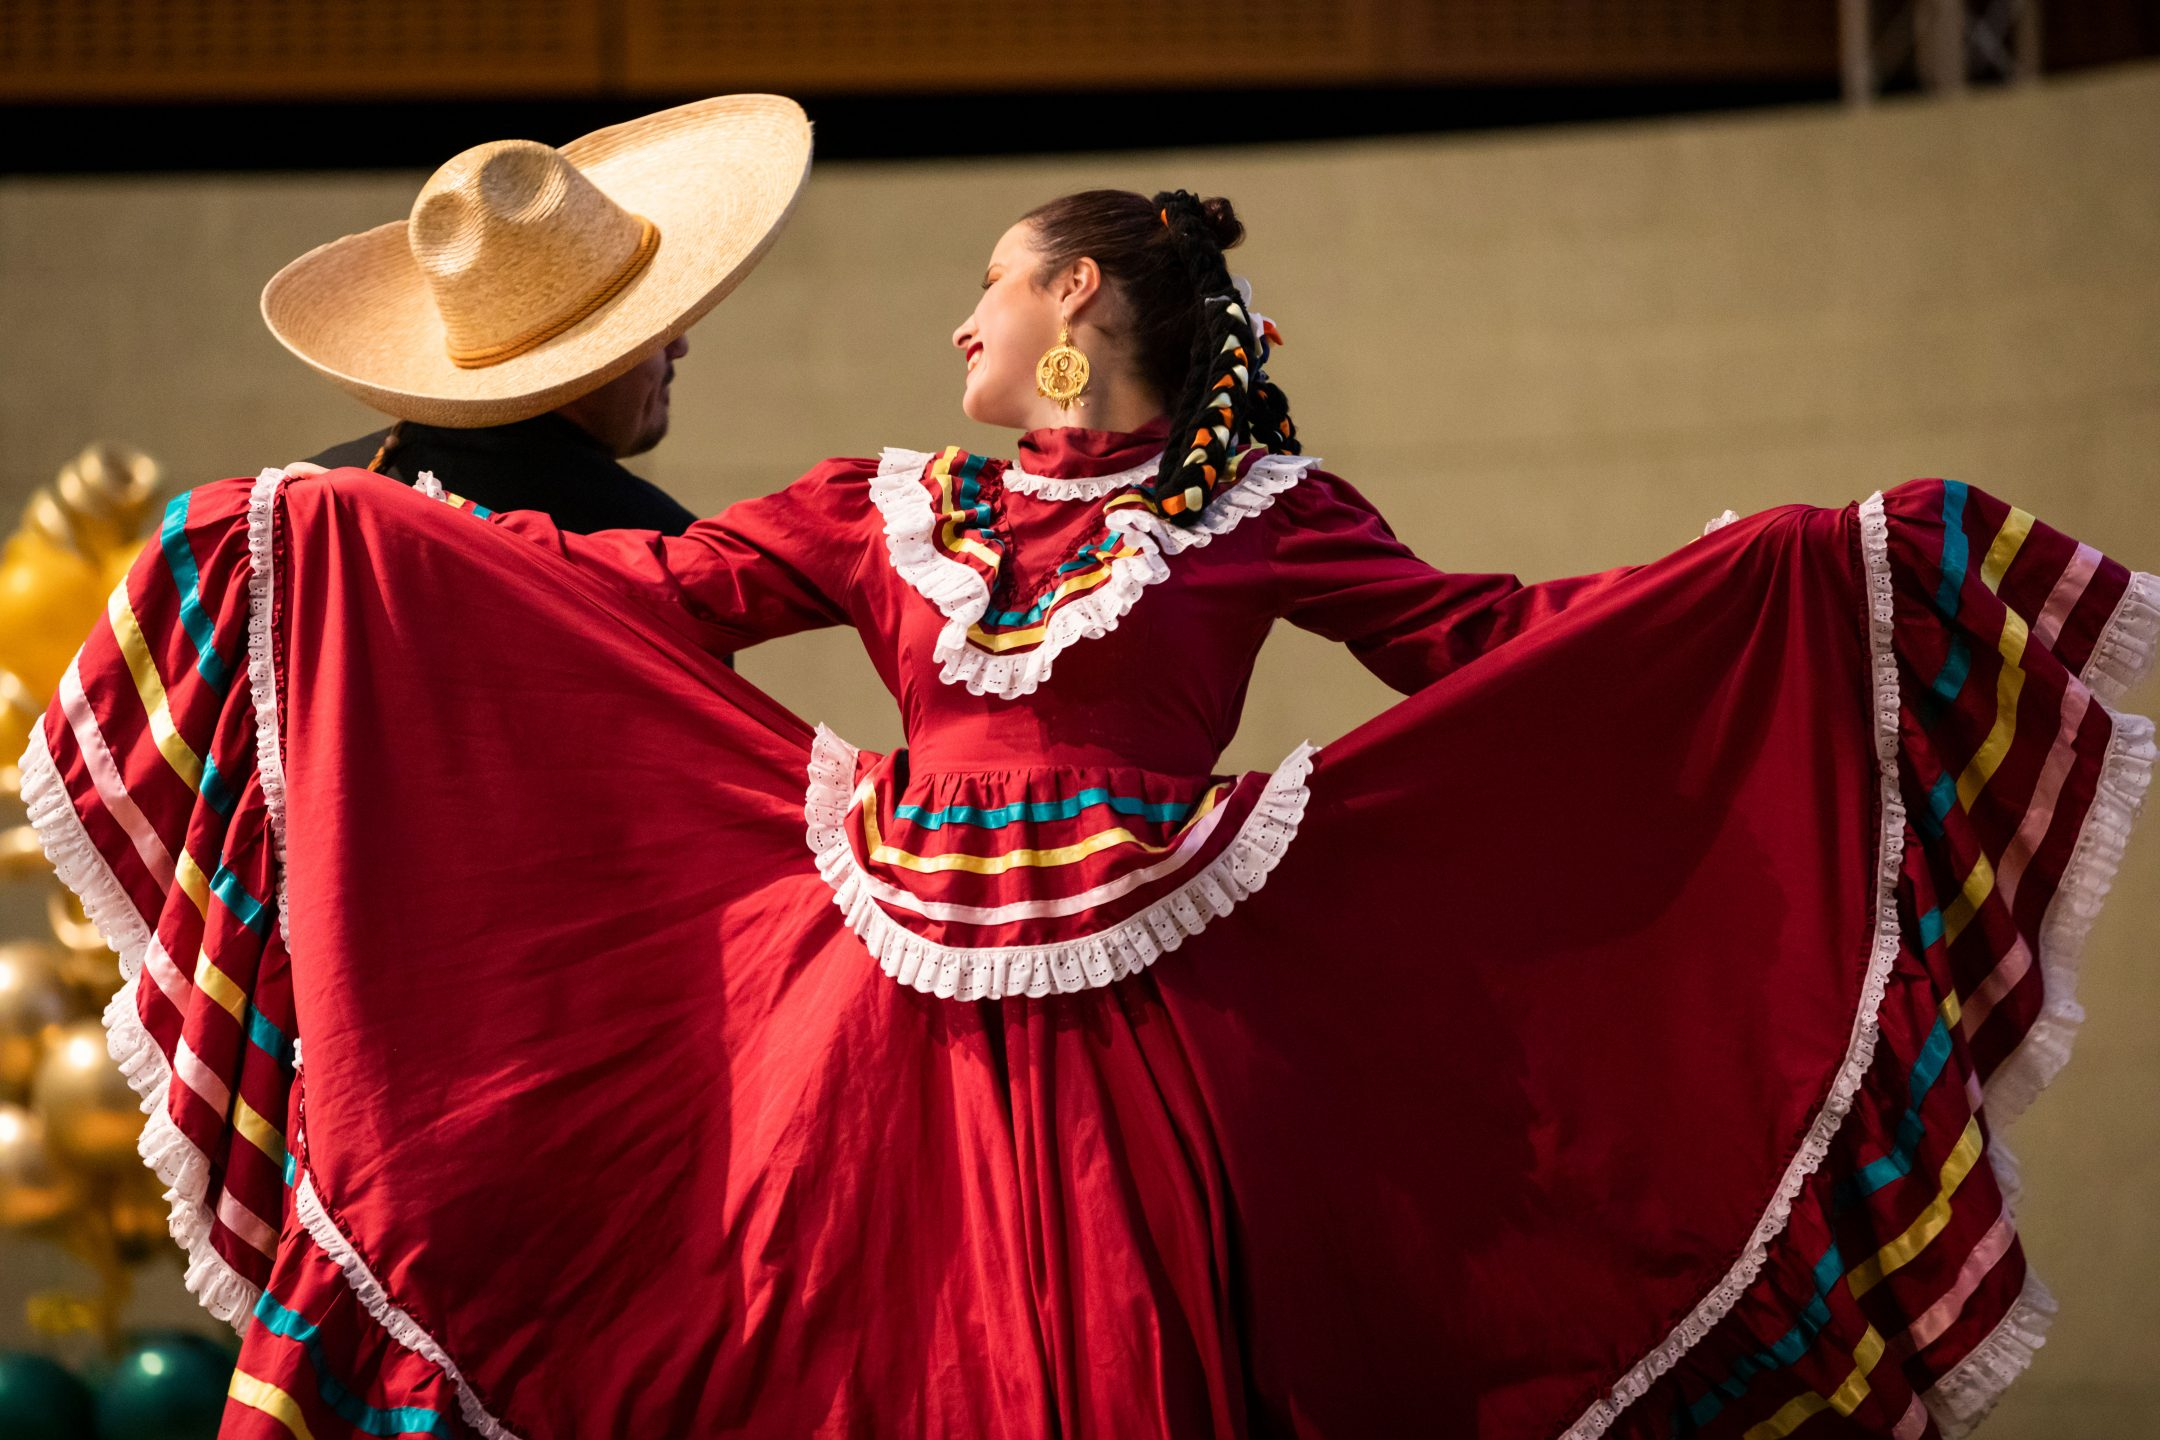 Dancers from Imagen y Espíritu Ballet Folklórico de Cal Poly perform on stage in traditional Mexican dress